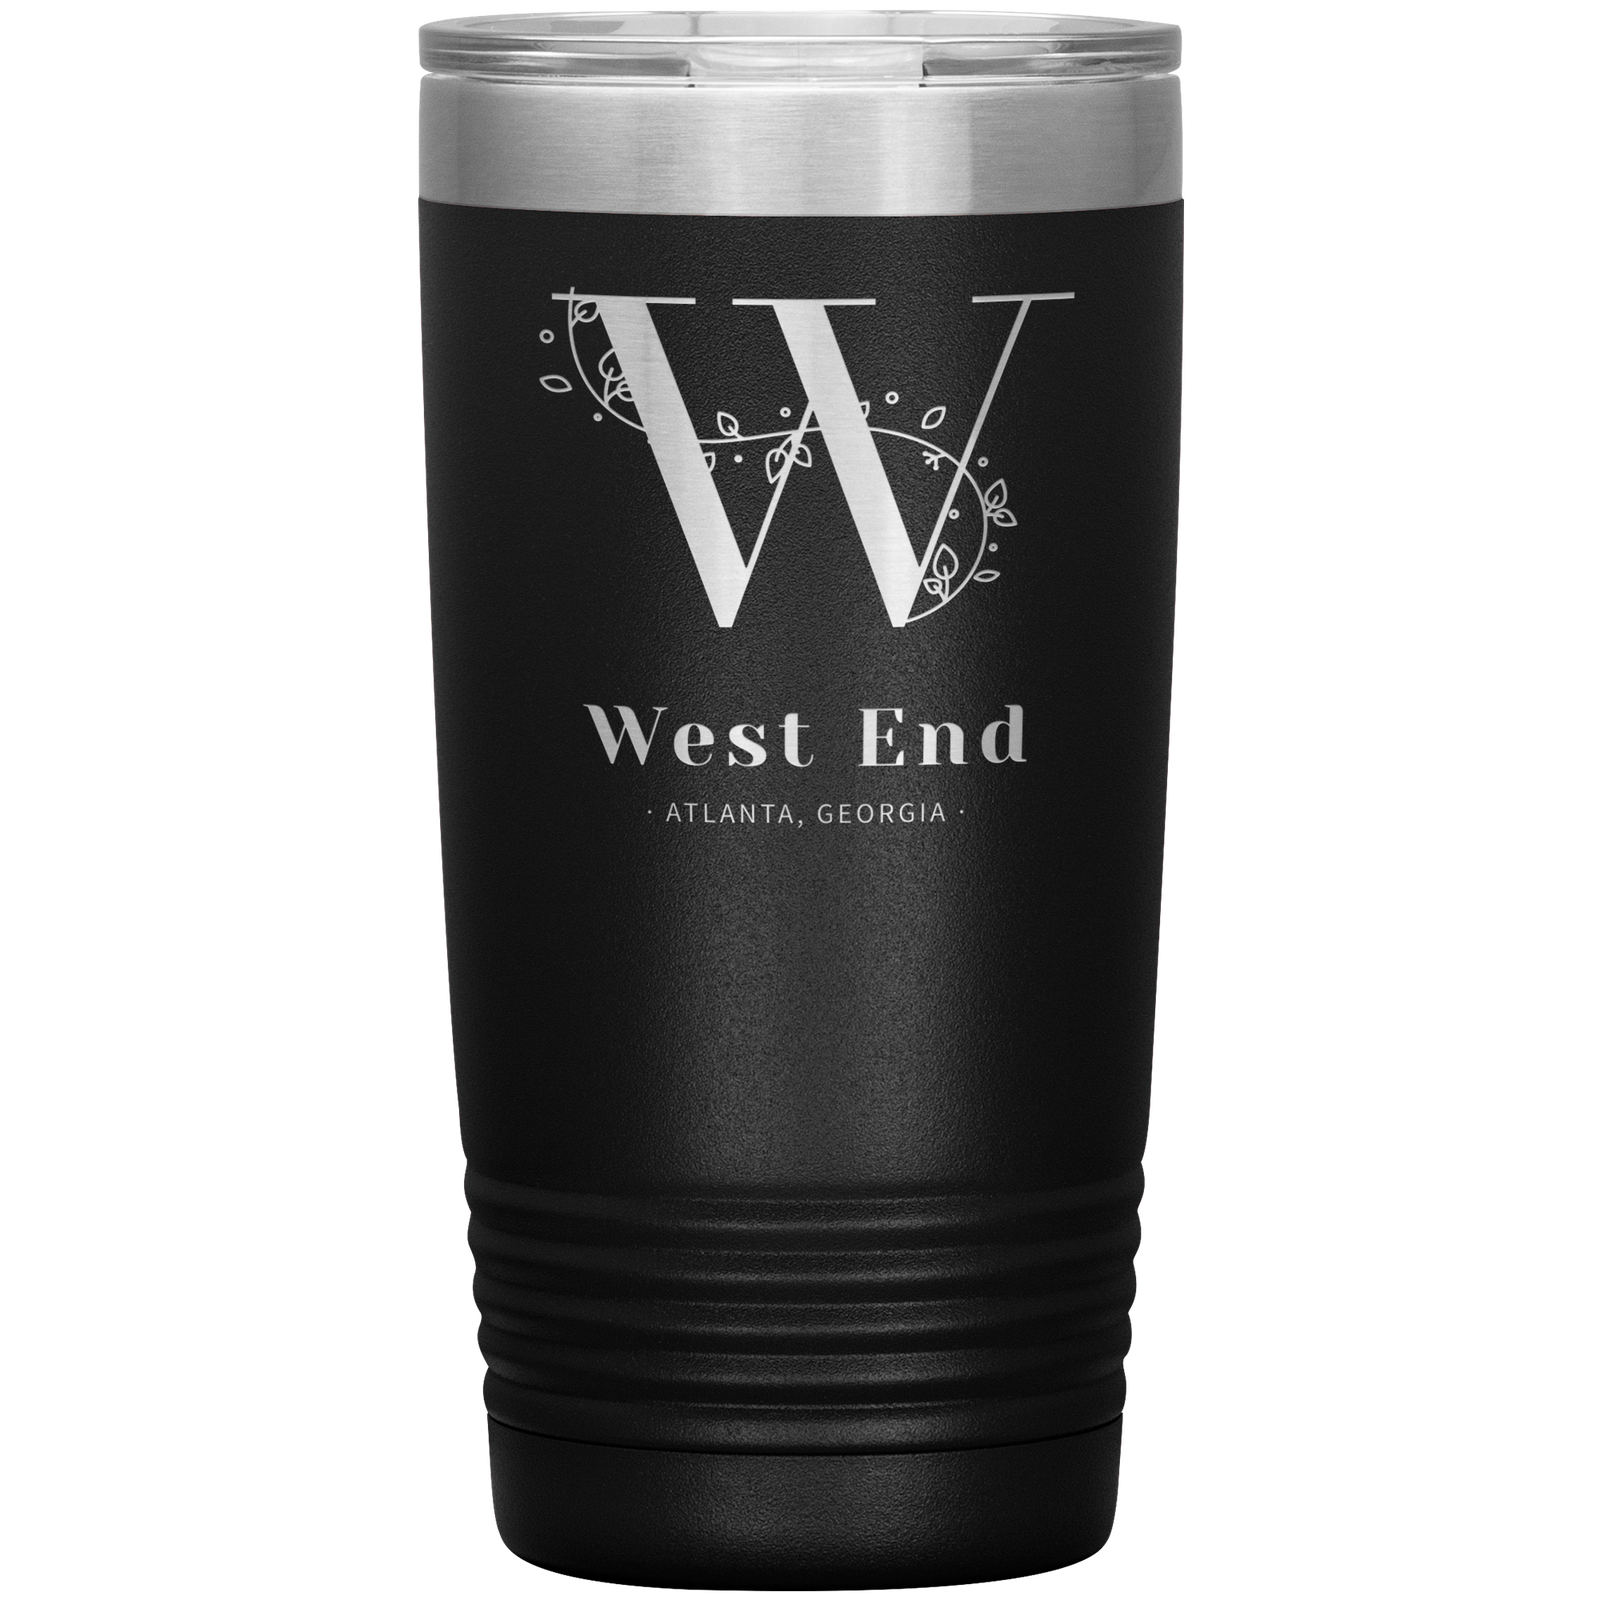 Primary image for West End Atlanta Double Wall Vacuum Insulated Stainless Steel Tumbler 20 OZ Lid